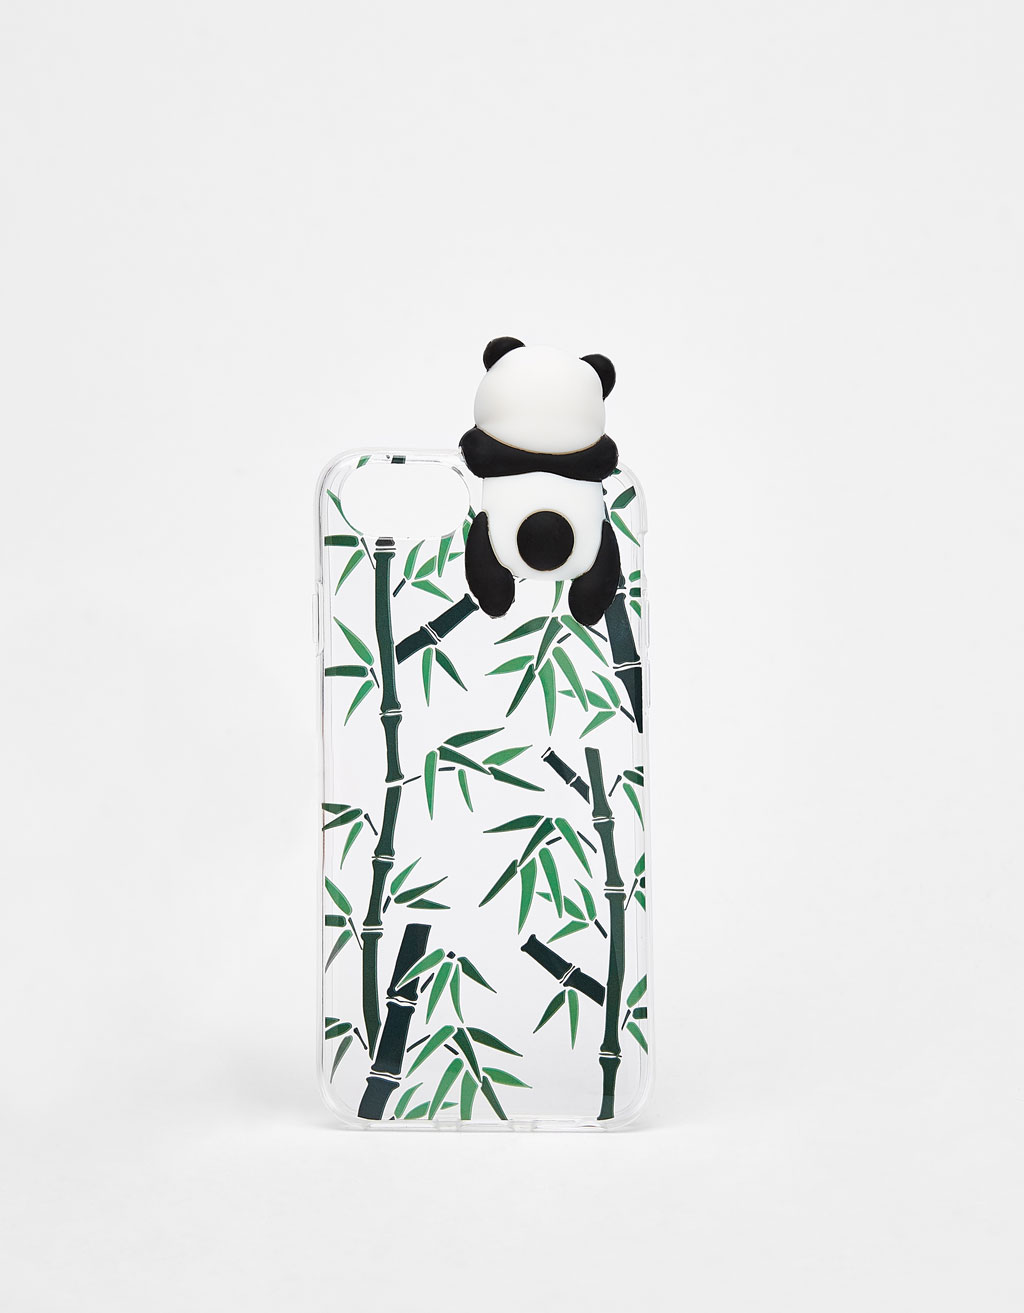 Transparent iPhone 6/6s/7/8 case with panda